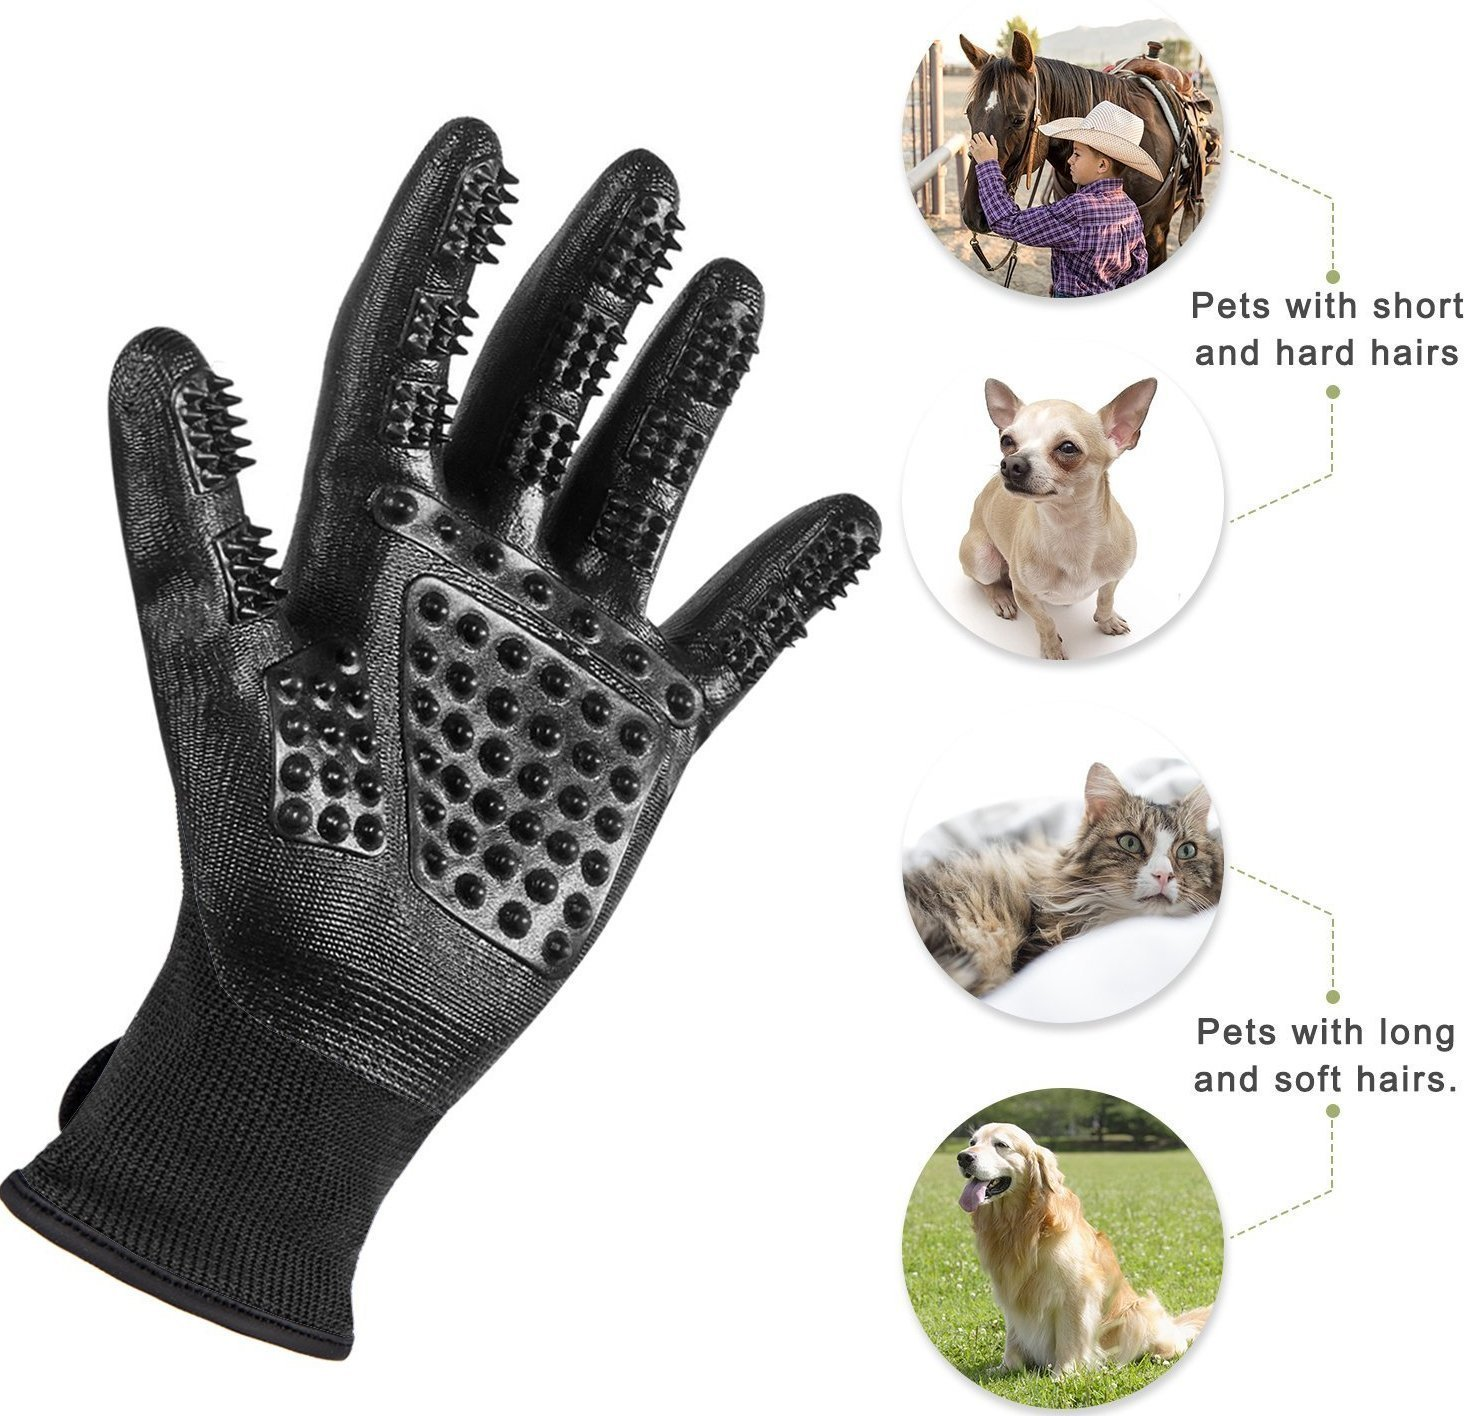 LibbyPet Pet Glooming Gloves for Cats and Dogs Hair Remover Deshedding Brush Glove Combing Massage for Long & Short Fur – Left & Right Hand (Black-S) by LibbyPet (Image #2)